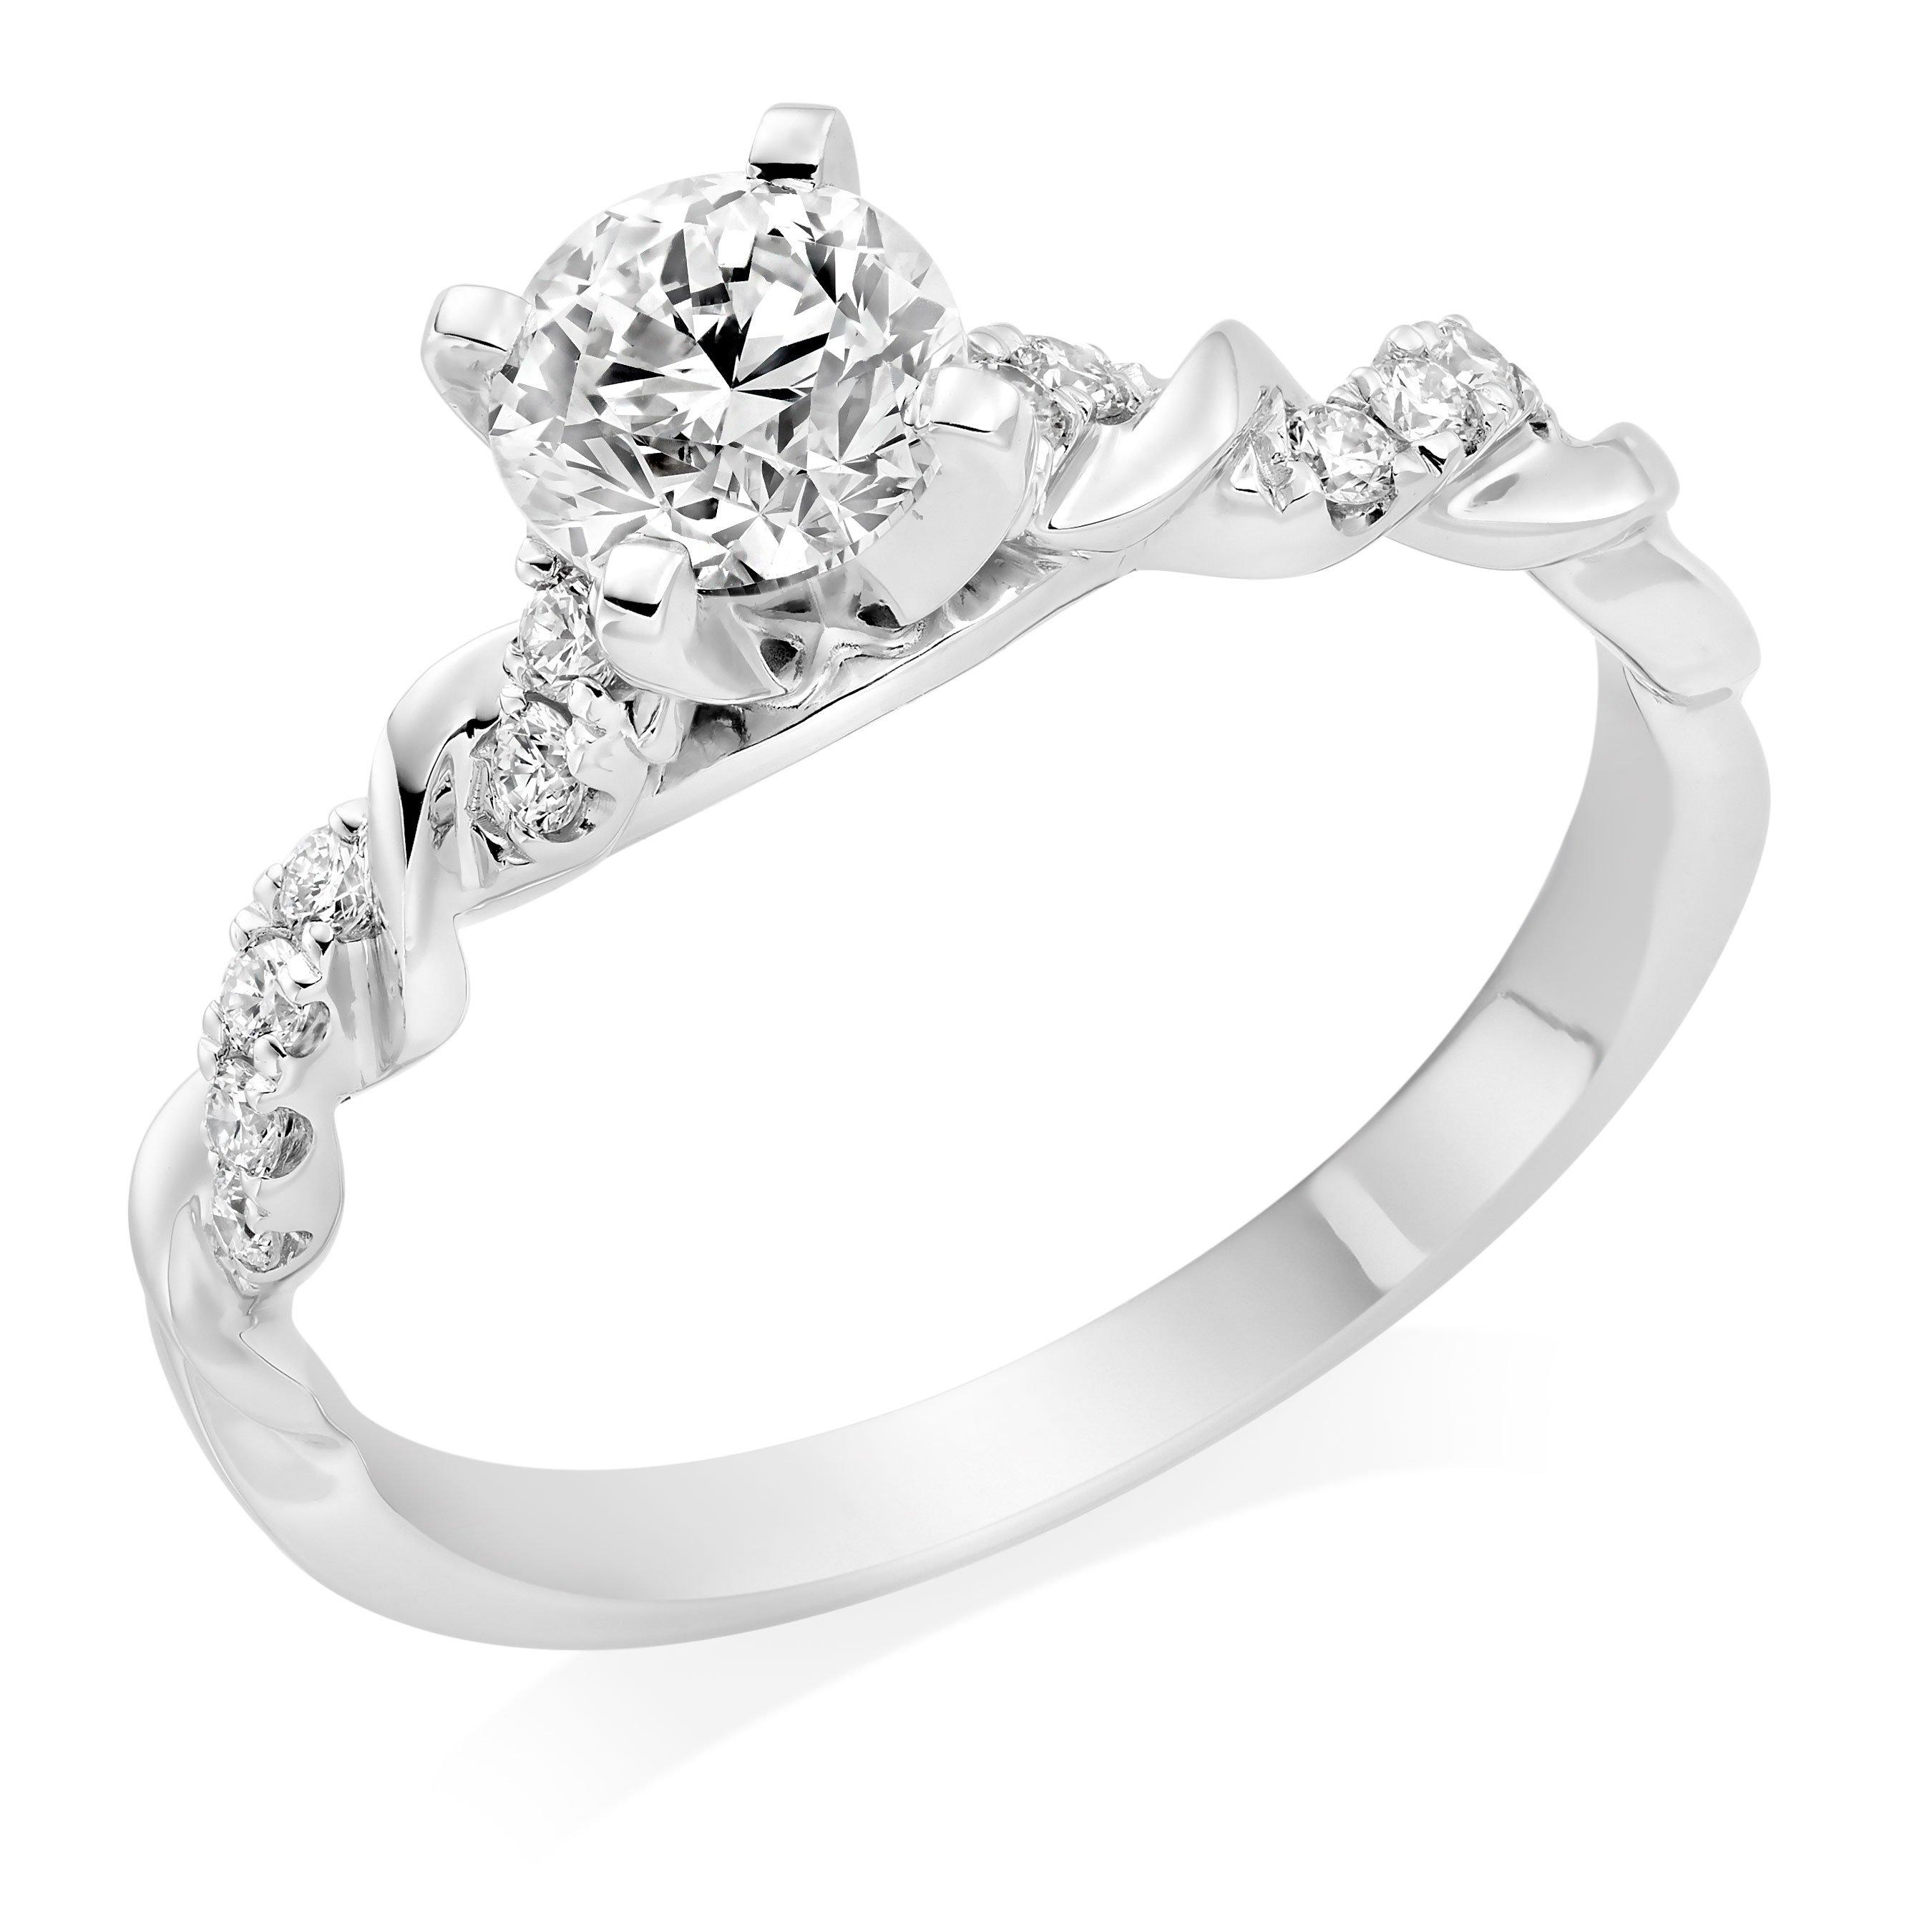 Entwine Platinum Diamond Solitaire Ring